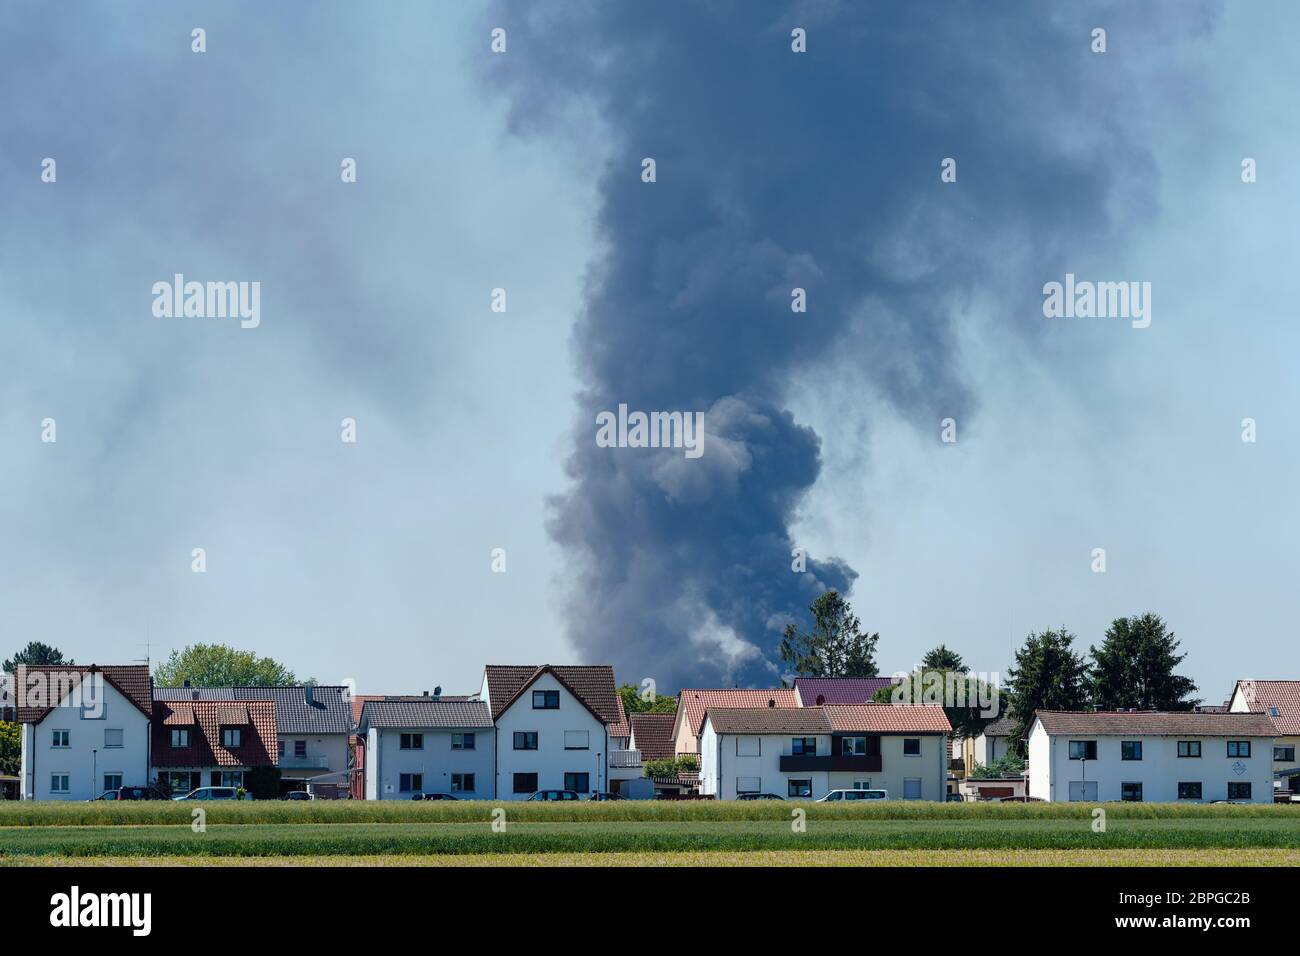 Ladenburg, Germany. 19th May, 2020. Clouds of smoke from a fire in a plastics factory rise into the sky behind houses. Because of the large fire in a factory building in Ladenburg (Rhine-Neckar district) a large cloud of smoke formed over the region. Credit: Uwe Anspach/dpa/Alamy Live News Stock Photo